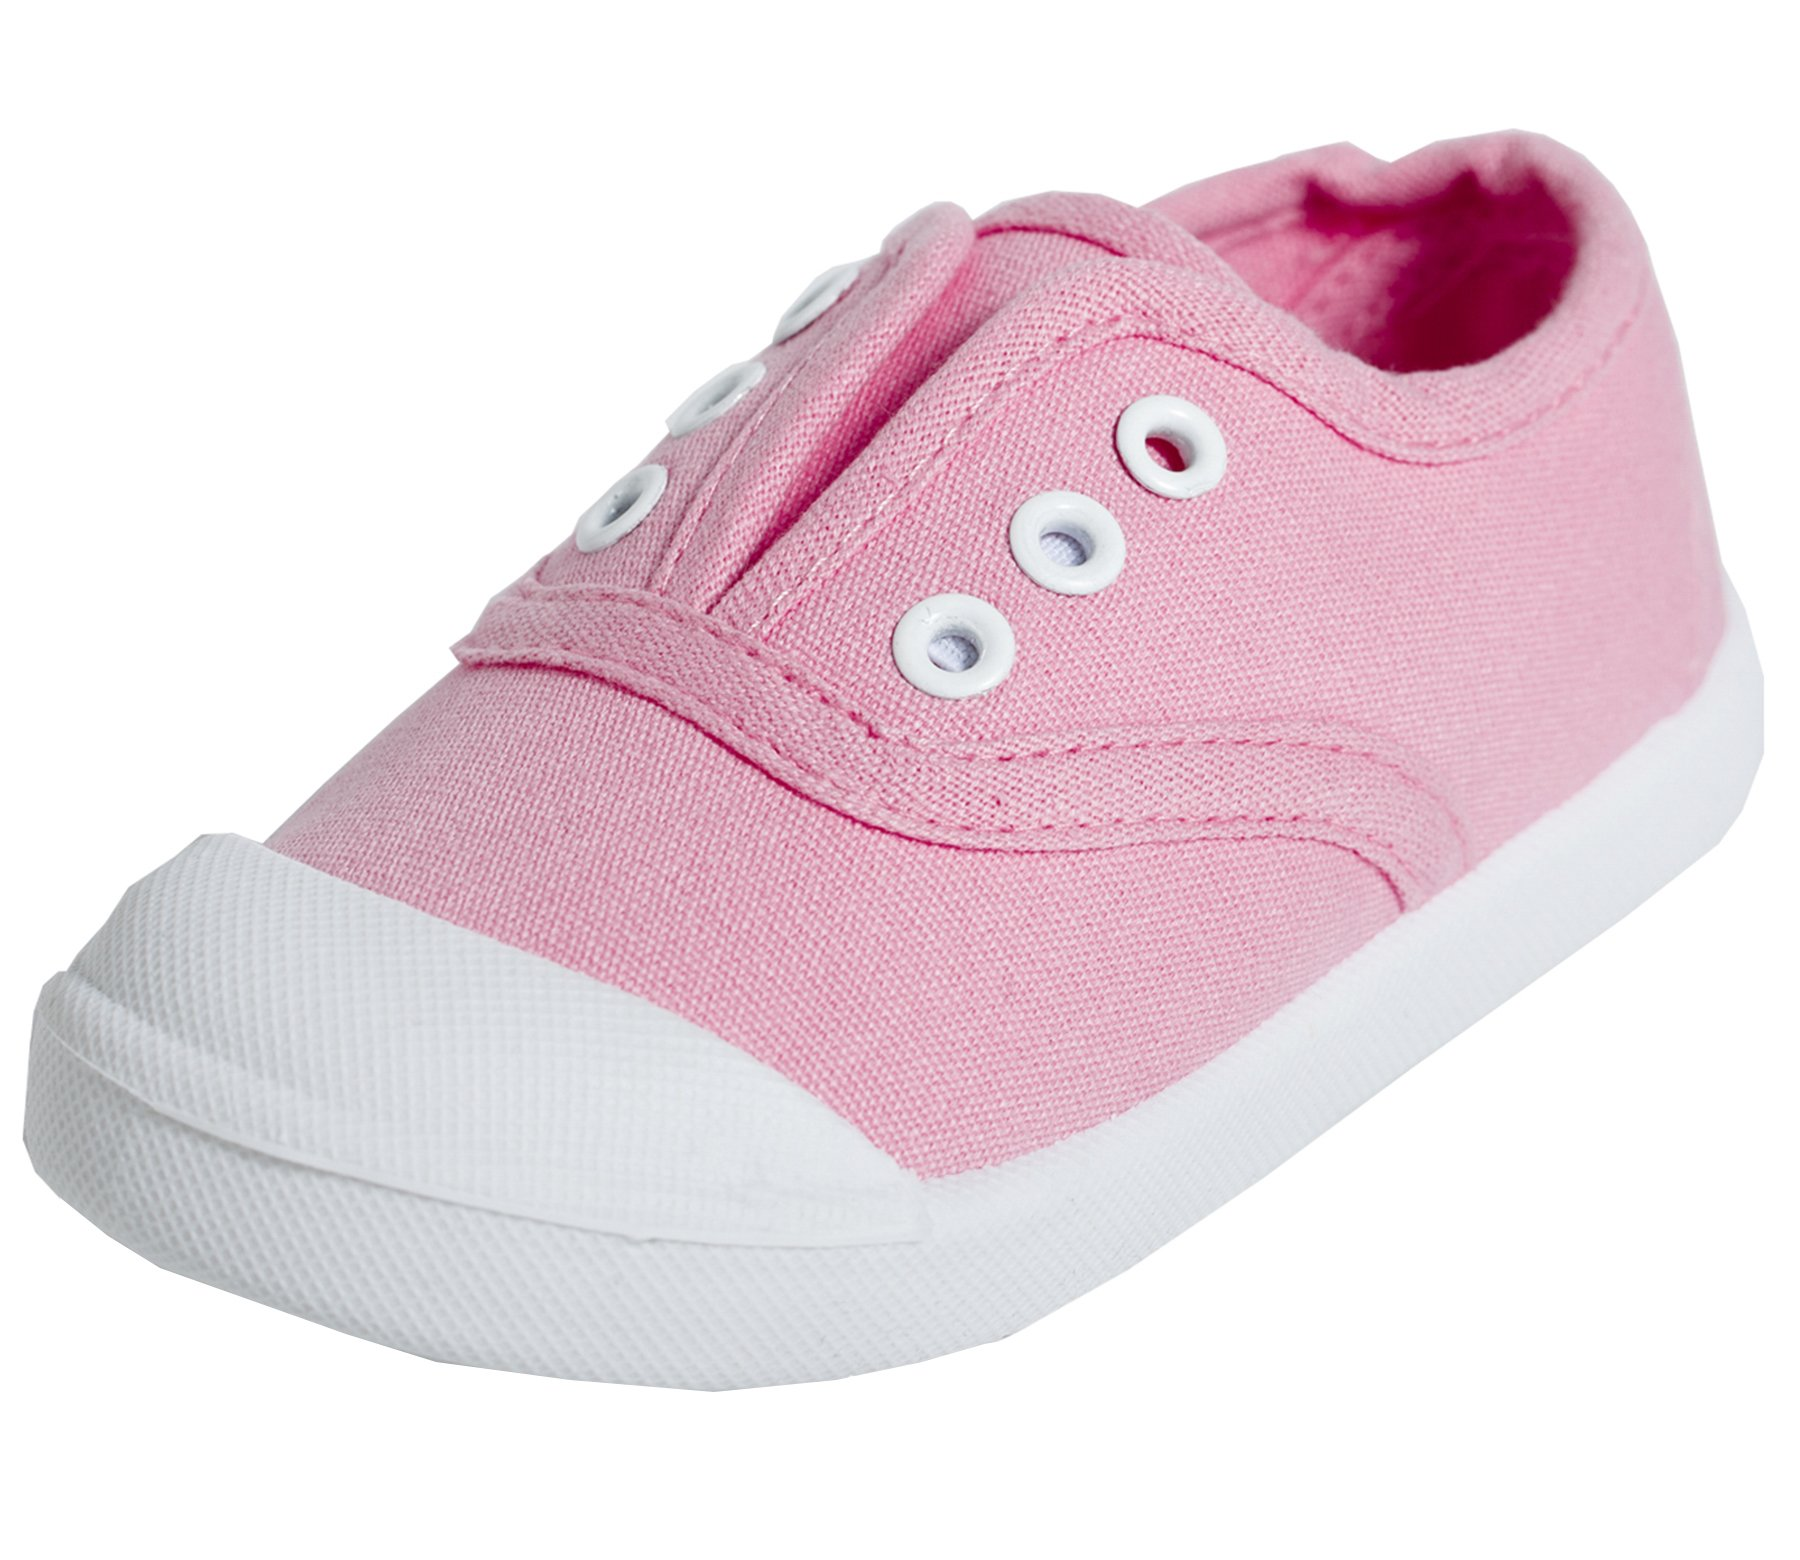 Kikiz Candy Color Kids Toddler Canvas Sneaker Boys Girls Casual Shoes Pink